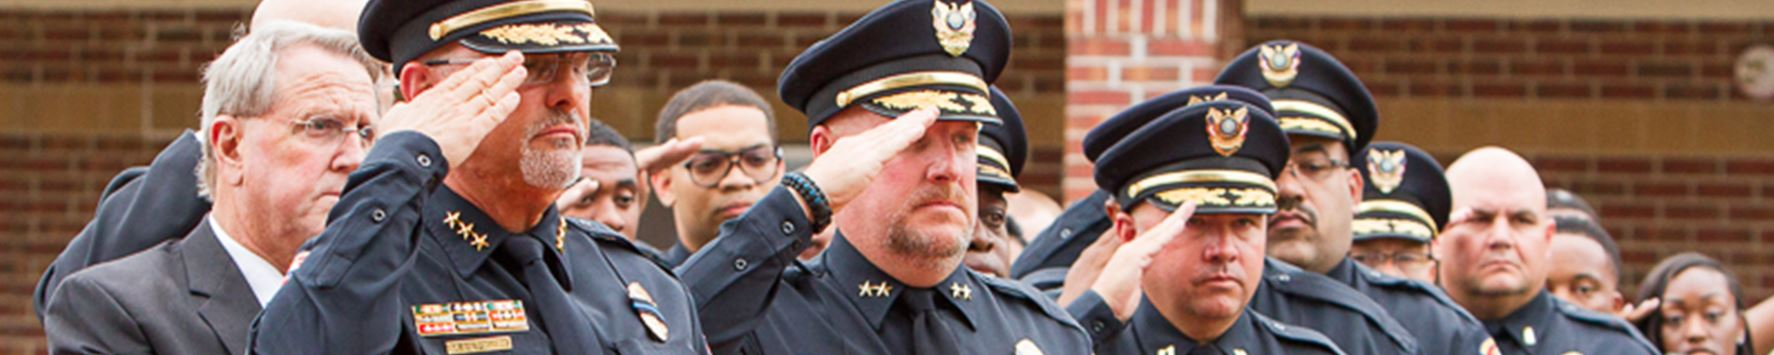 About the Police Department | Missouri City, TX - Official